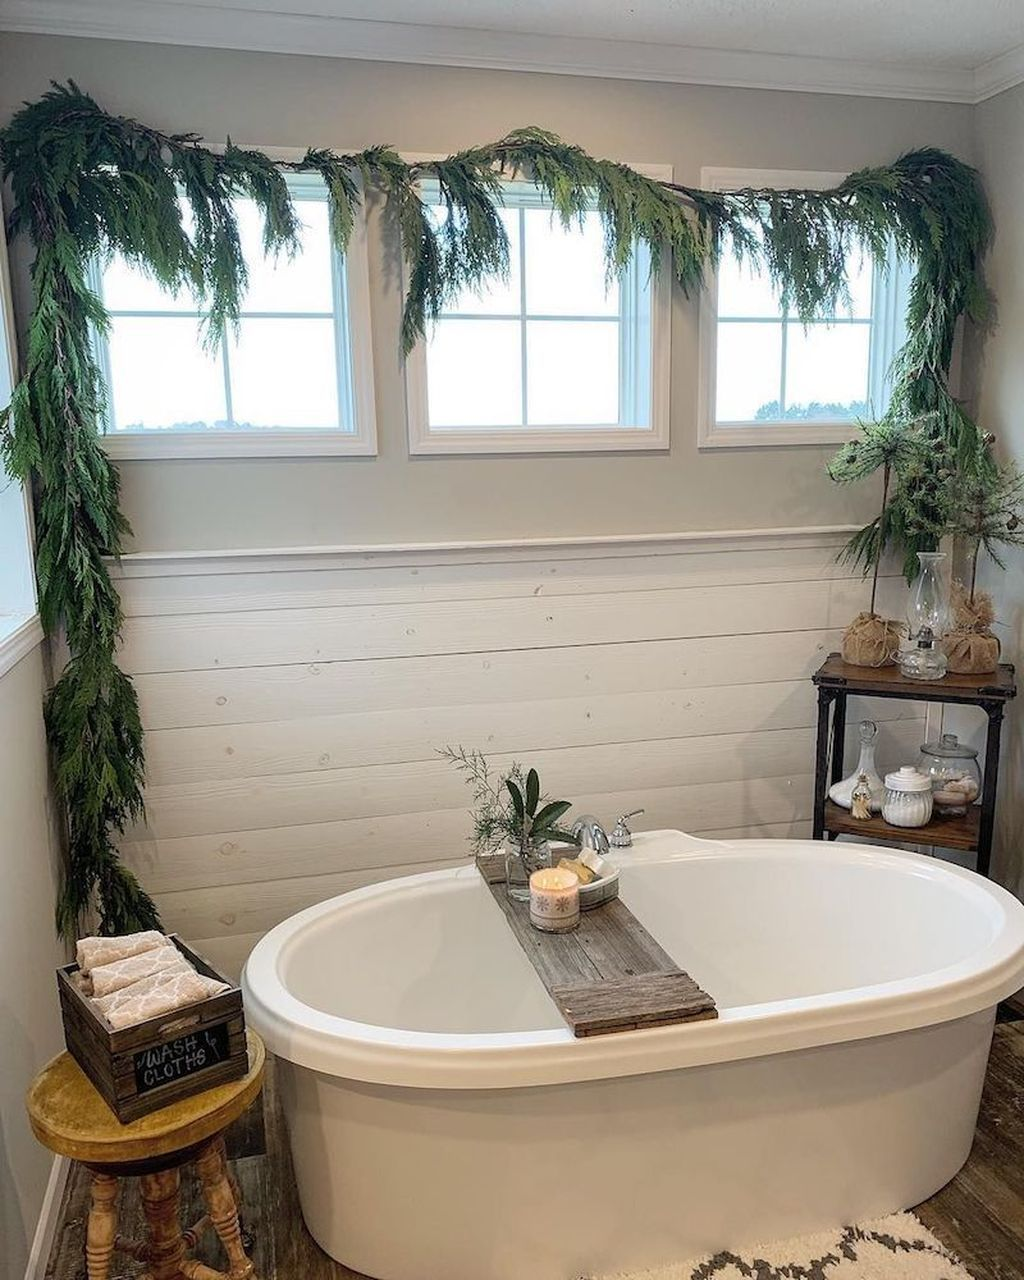 The Best Winter Bathroom Decor Ideas 01